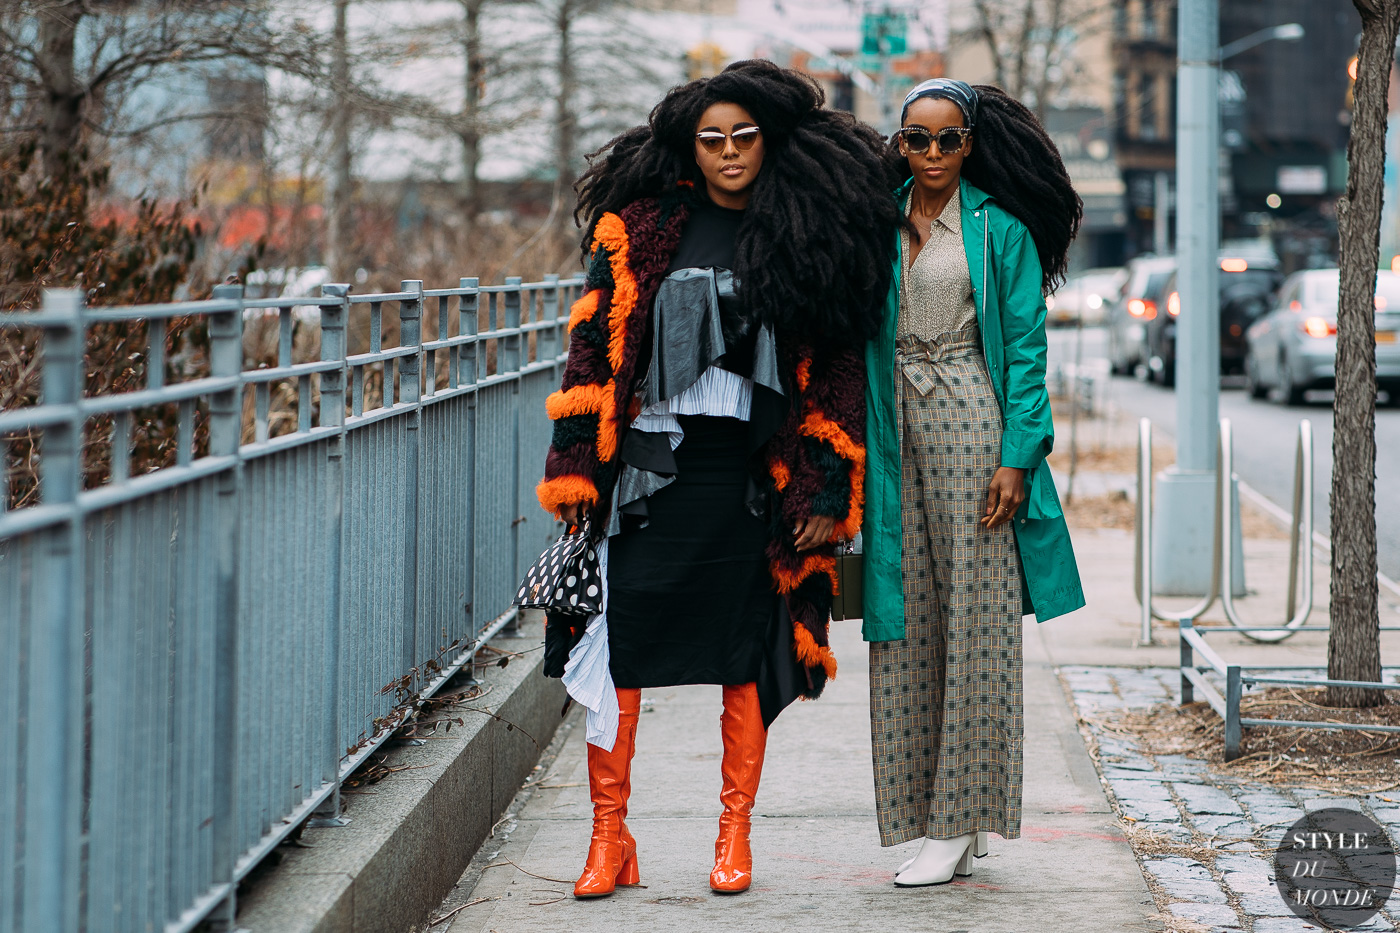 TK Wonder and Cipriana Quann by STYLEDUMONDE Street Style Fashion Photography NY FW18 20180210_48A4978